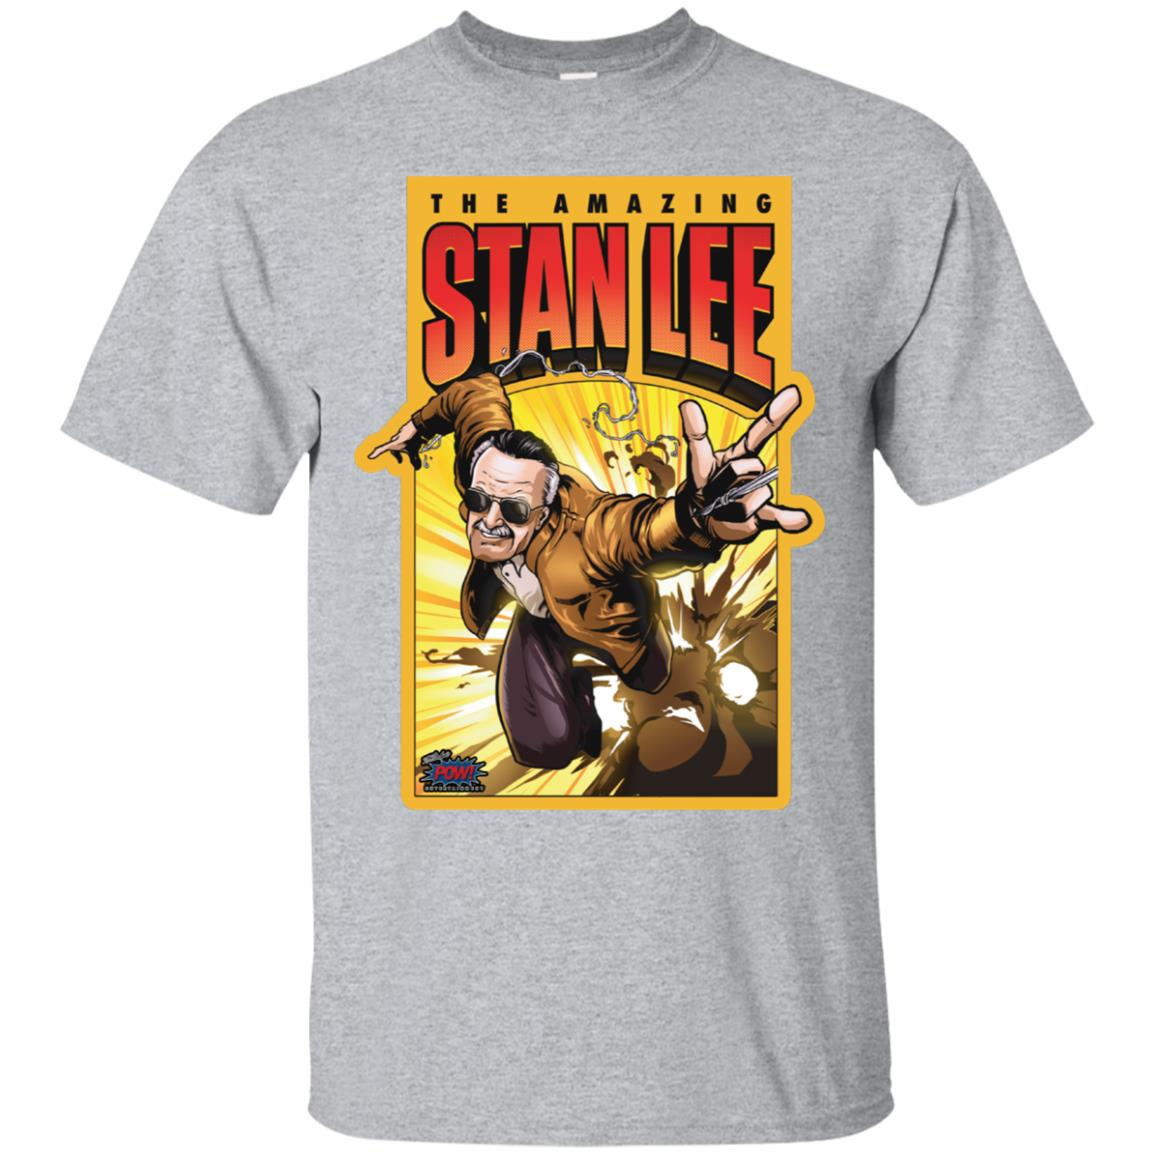 Pow! Entertainment's Amazing Stan Lee Tee (Multiple Colors) 99promocode